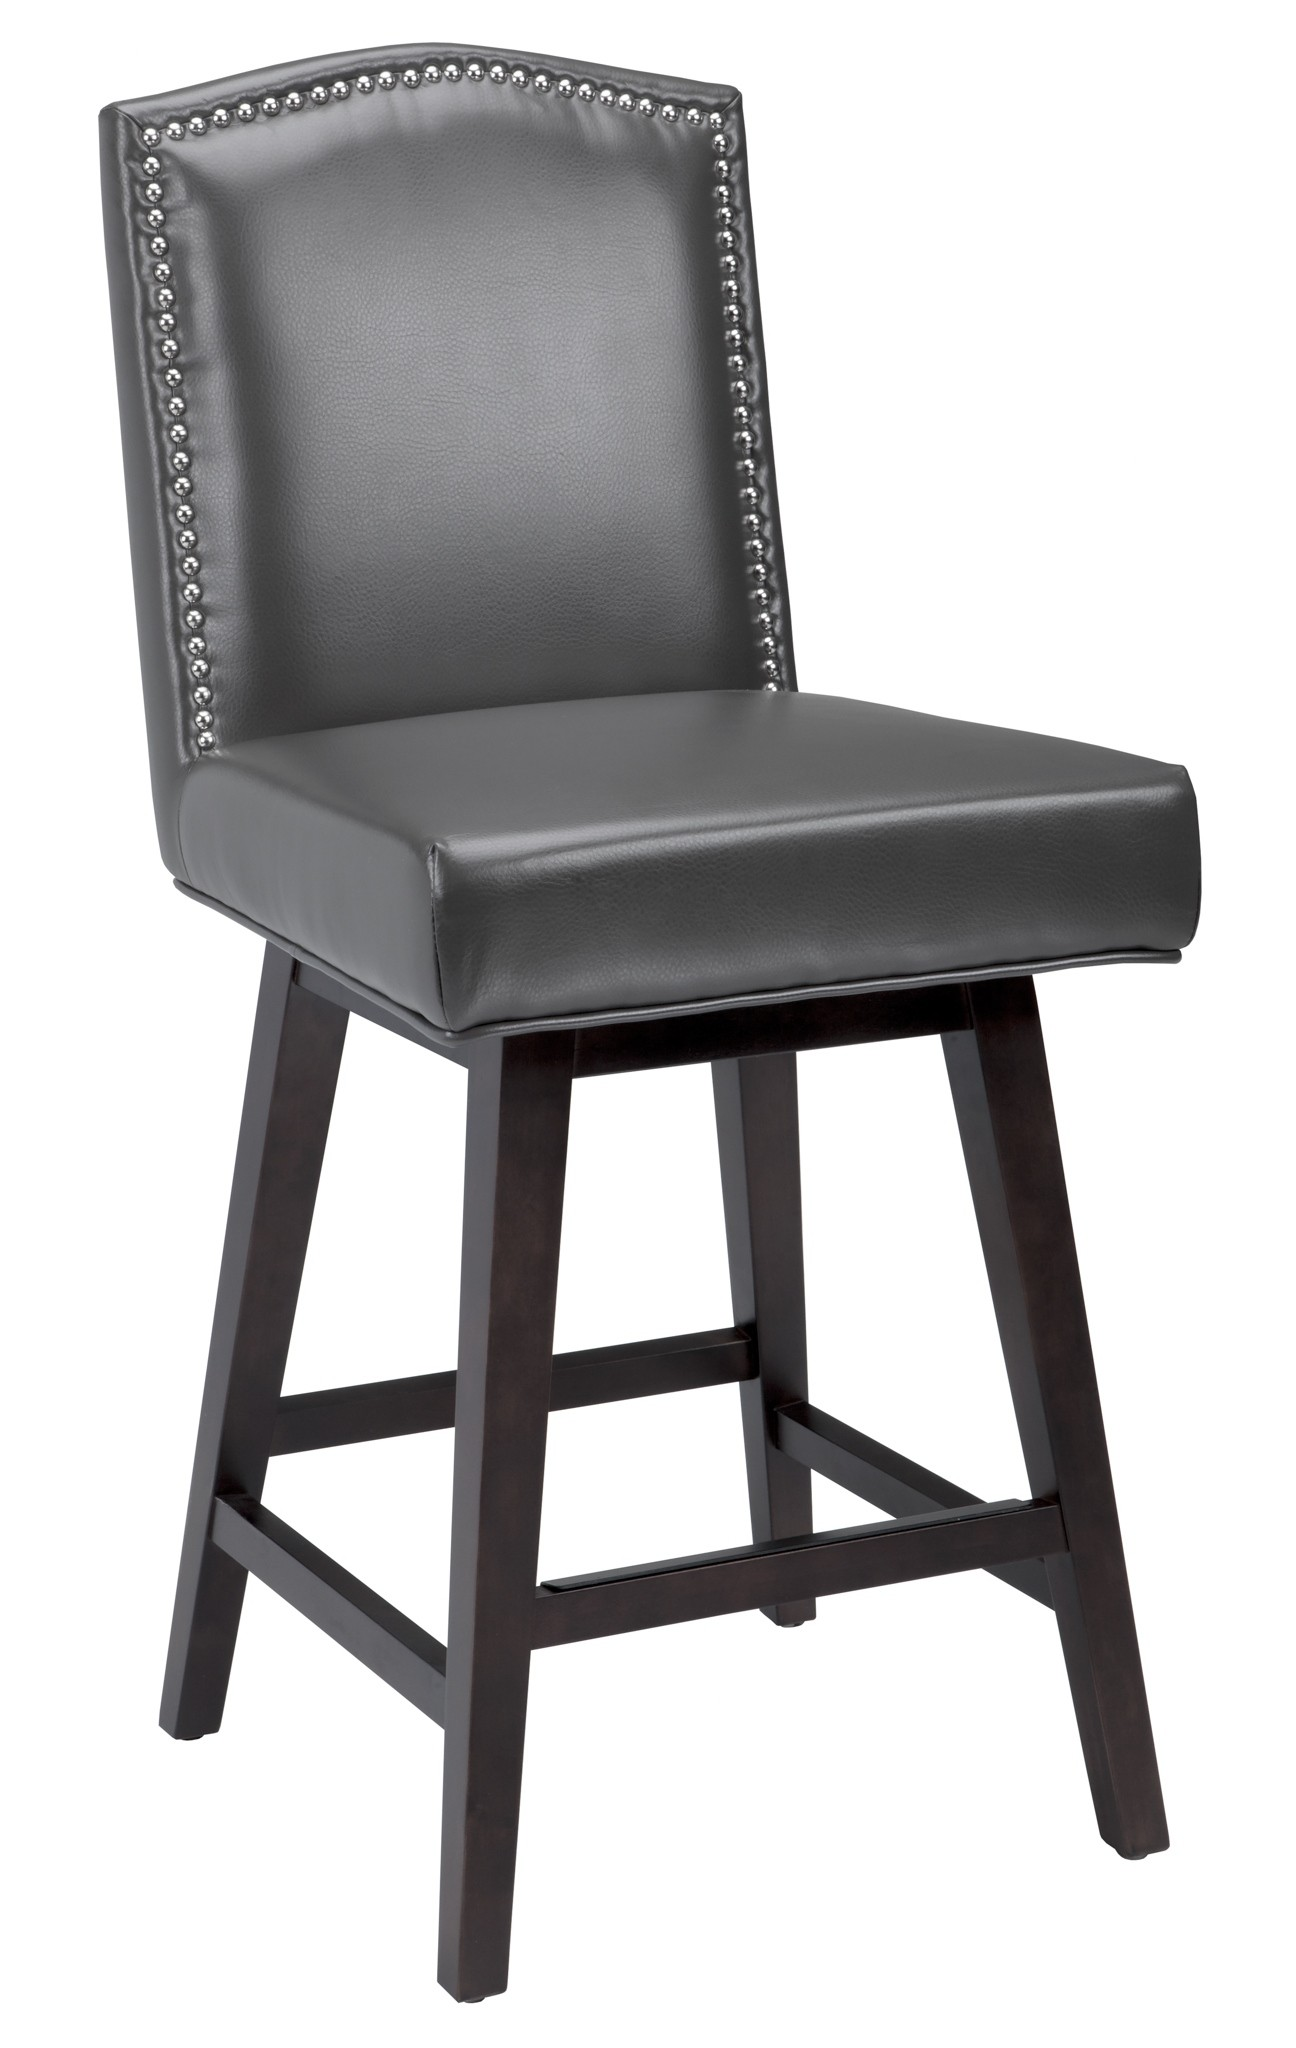 Maison Grey Swivel Counter Stool from Sunpan 73018  : maisonswivelcounterstoolgrey73018 from colemanfurniture.com size 1296 x 2048 jpeg 223kB